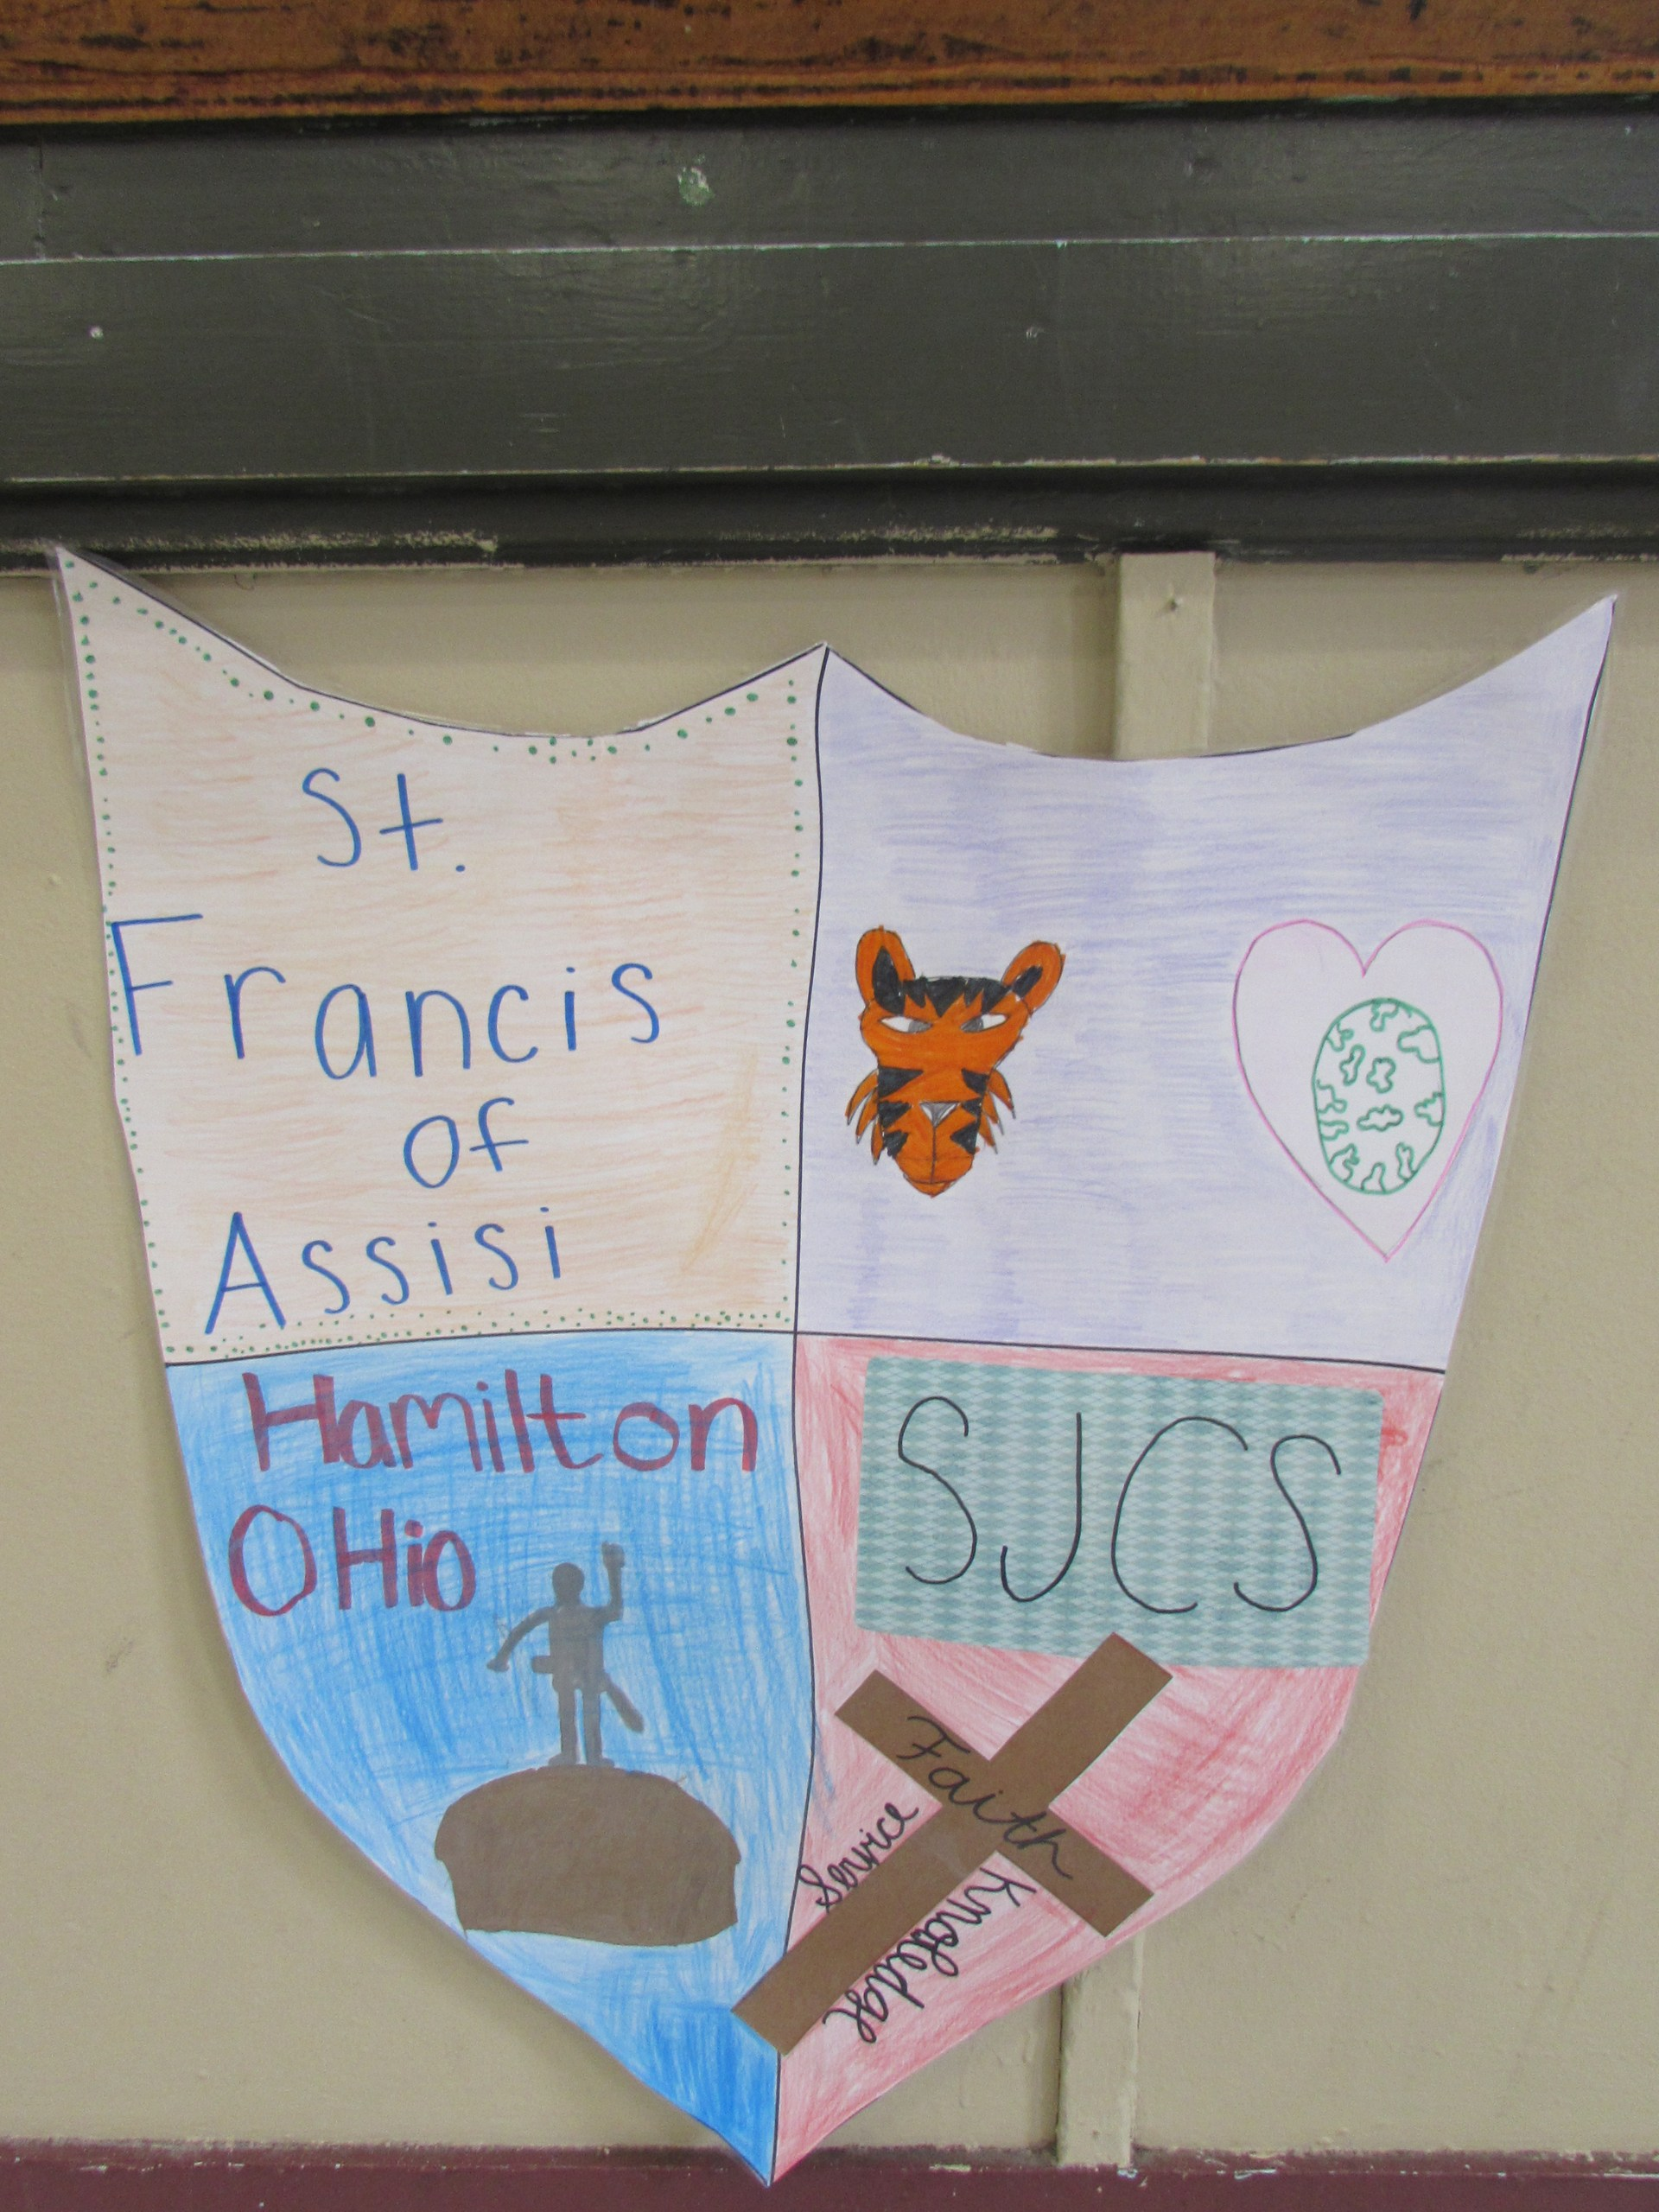 St. Francis of Assisi Crest